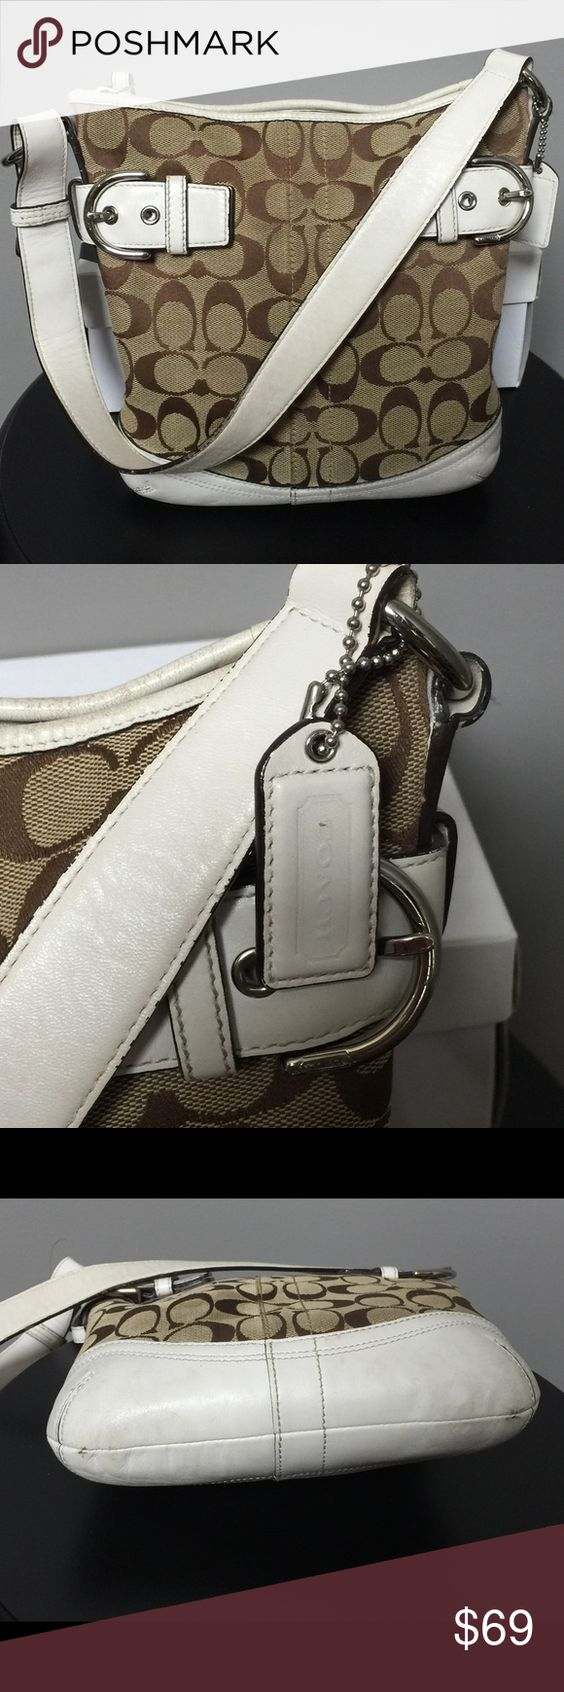 Coach white signature logo duffle bag White leather trimmed coach handbag. Some wear on leather (shown in picture). Coach Bags Shoulder Bags